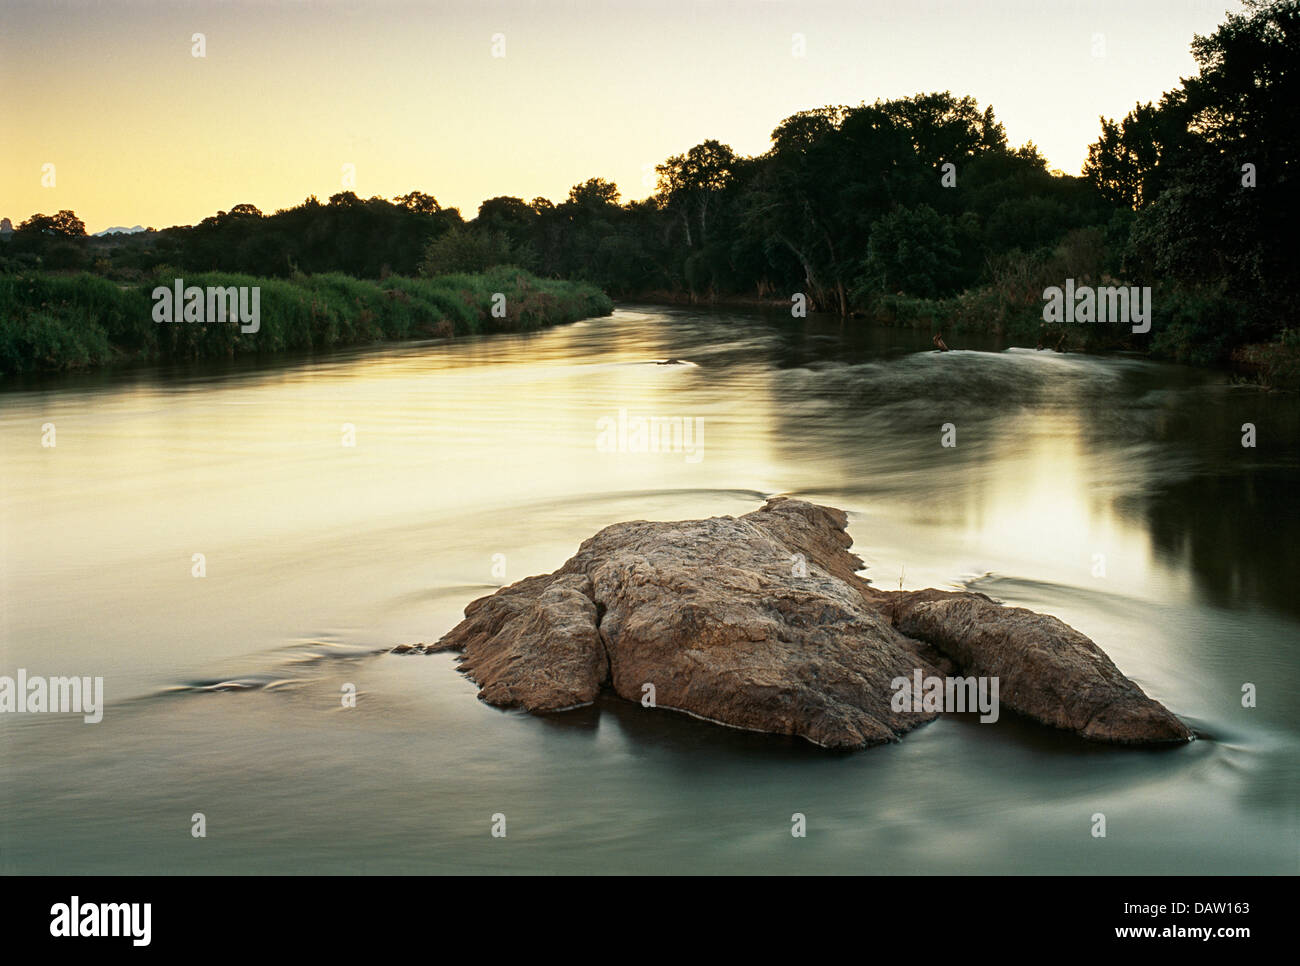 Dusk photograph of moving water of the Olifants River, South Africa - Stock Image